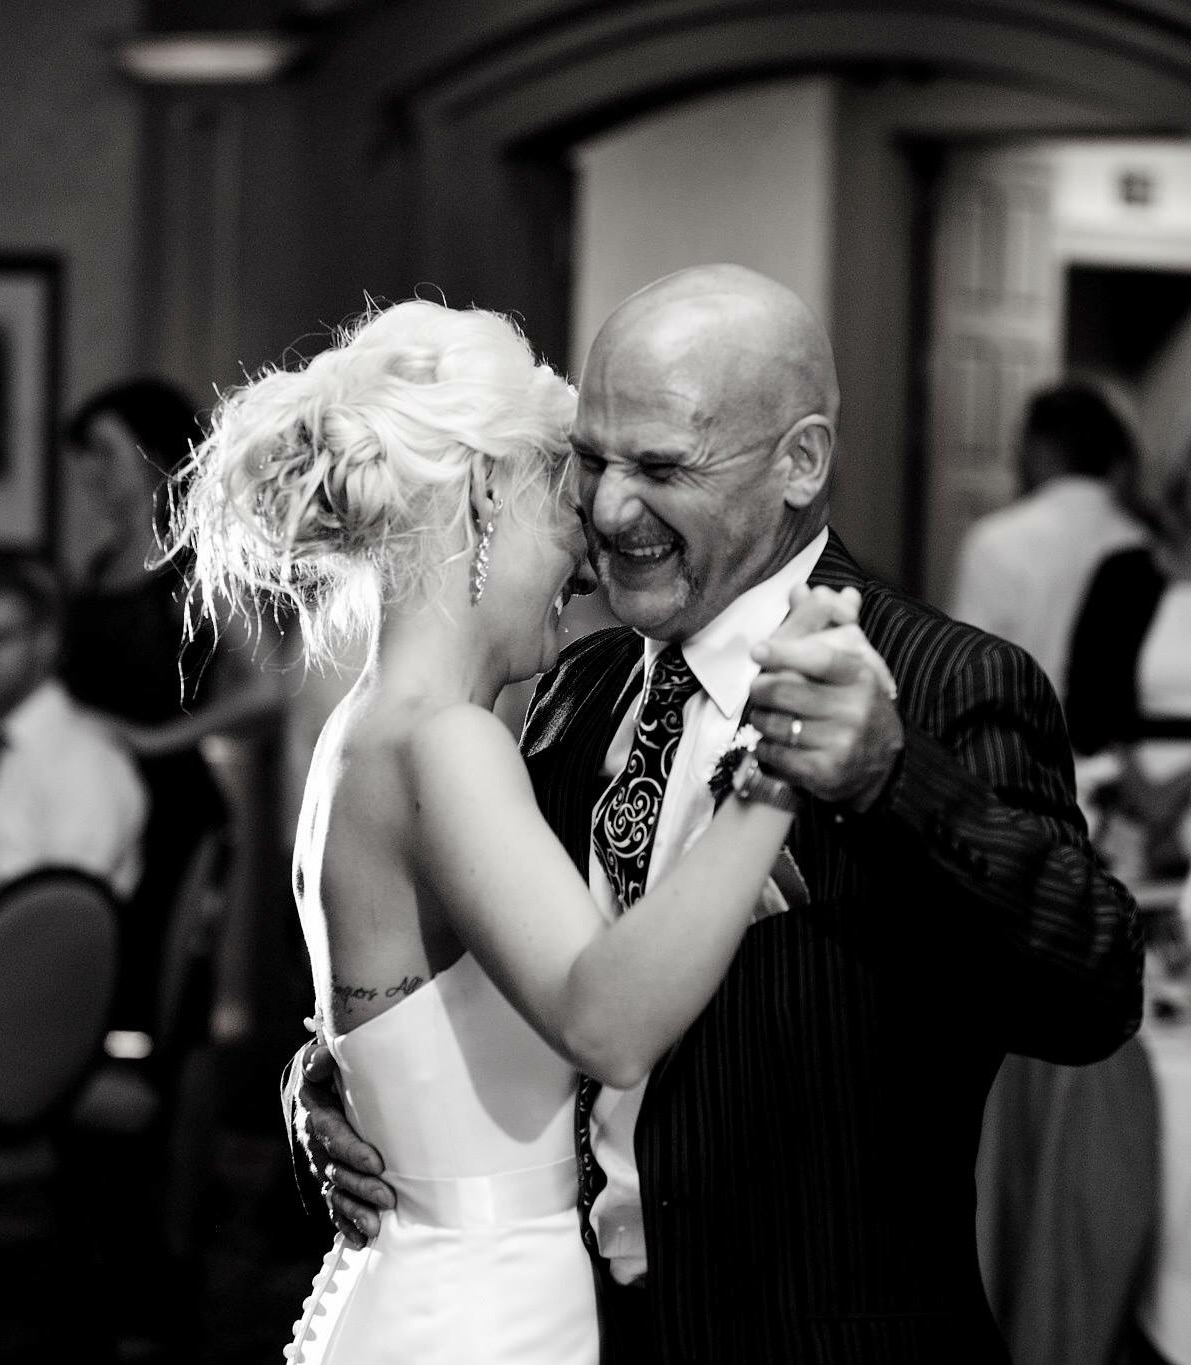 My dad's laughter as he dances with my sister on her wedding day.